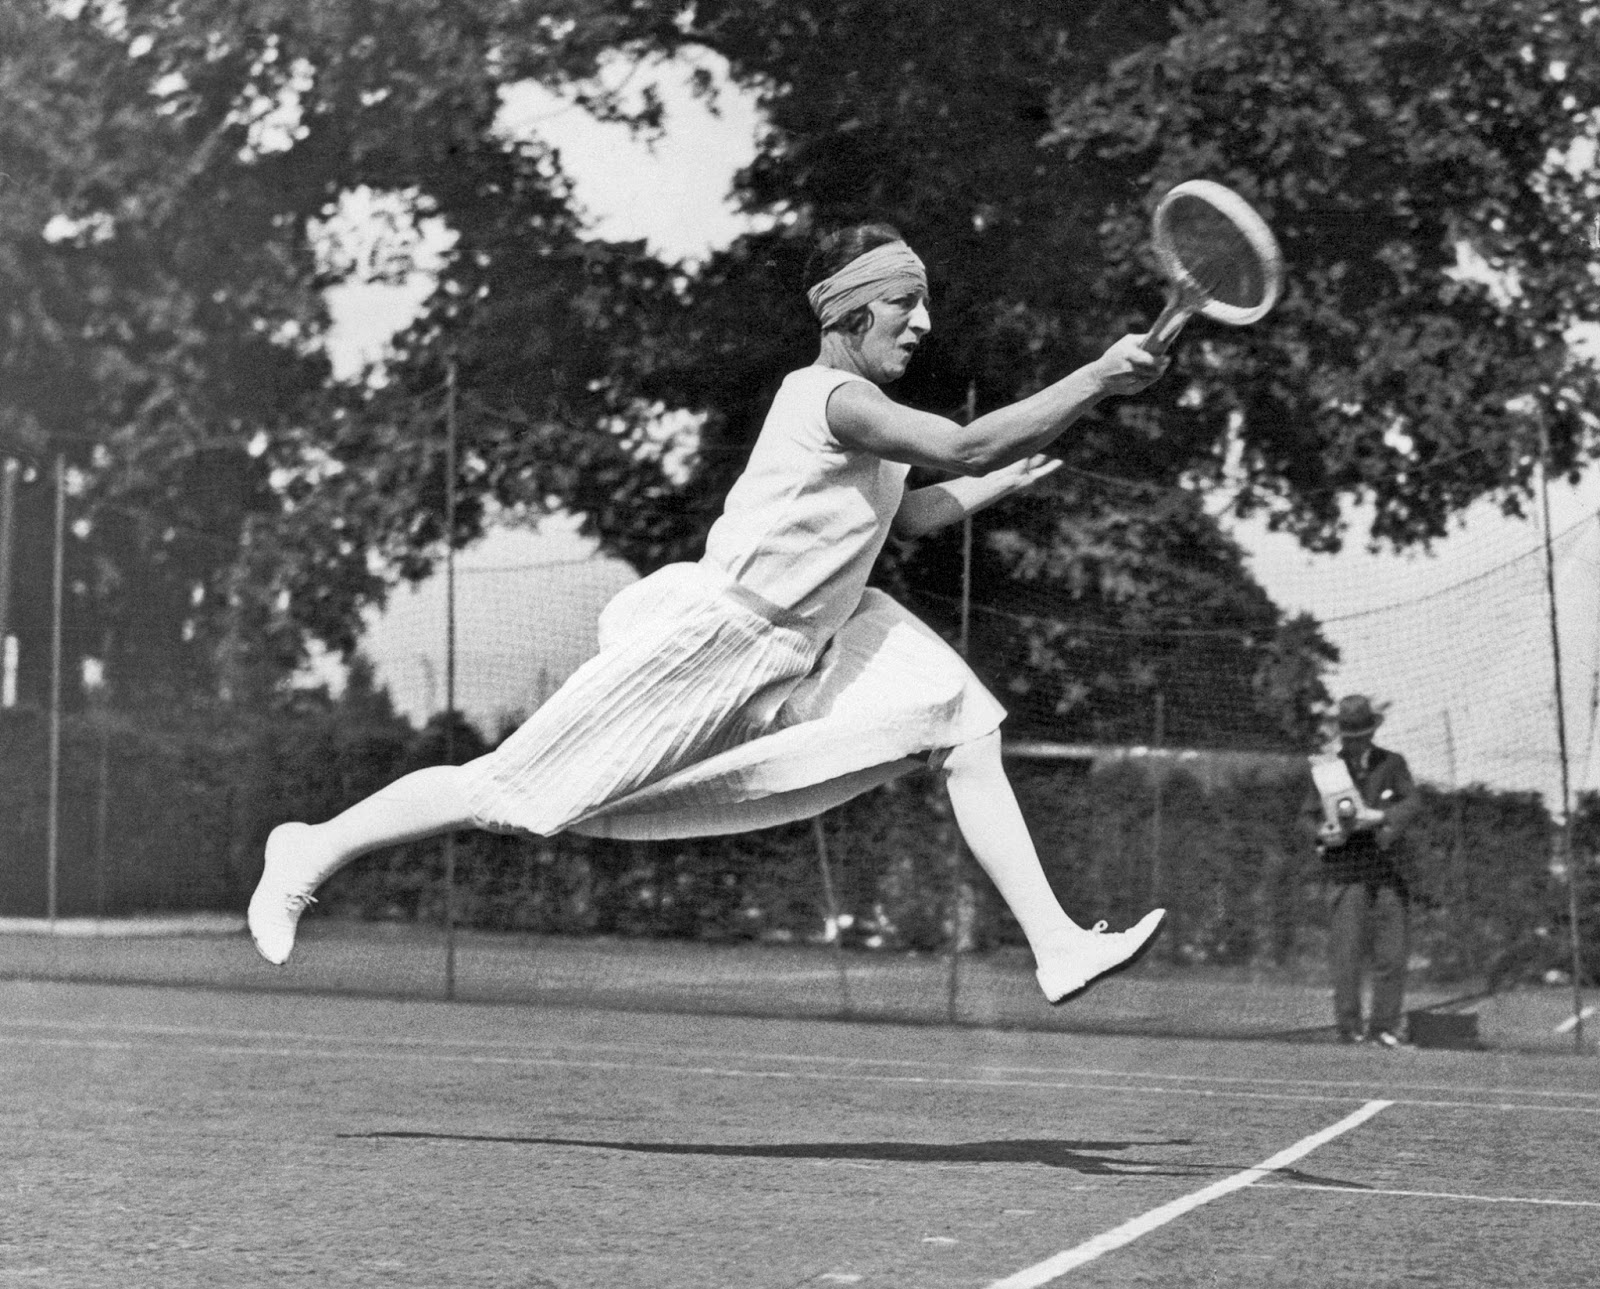 Was This How Tennis was Introduced?